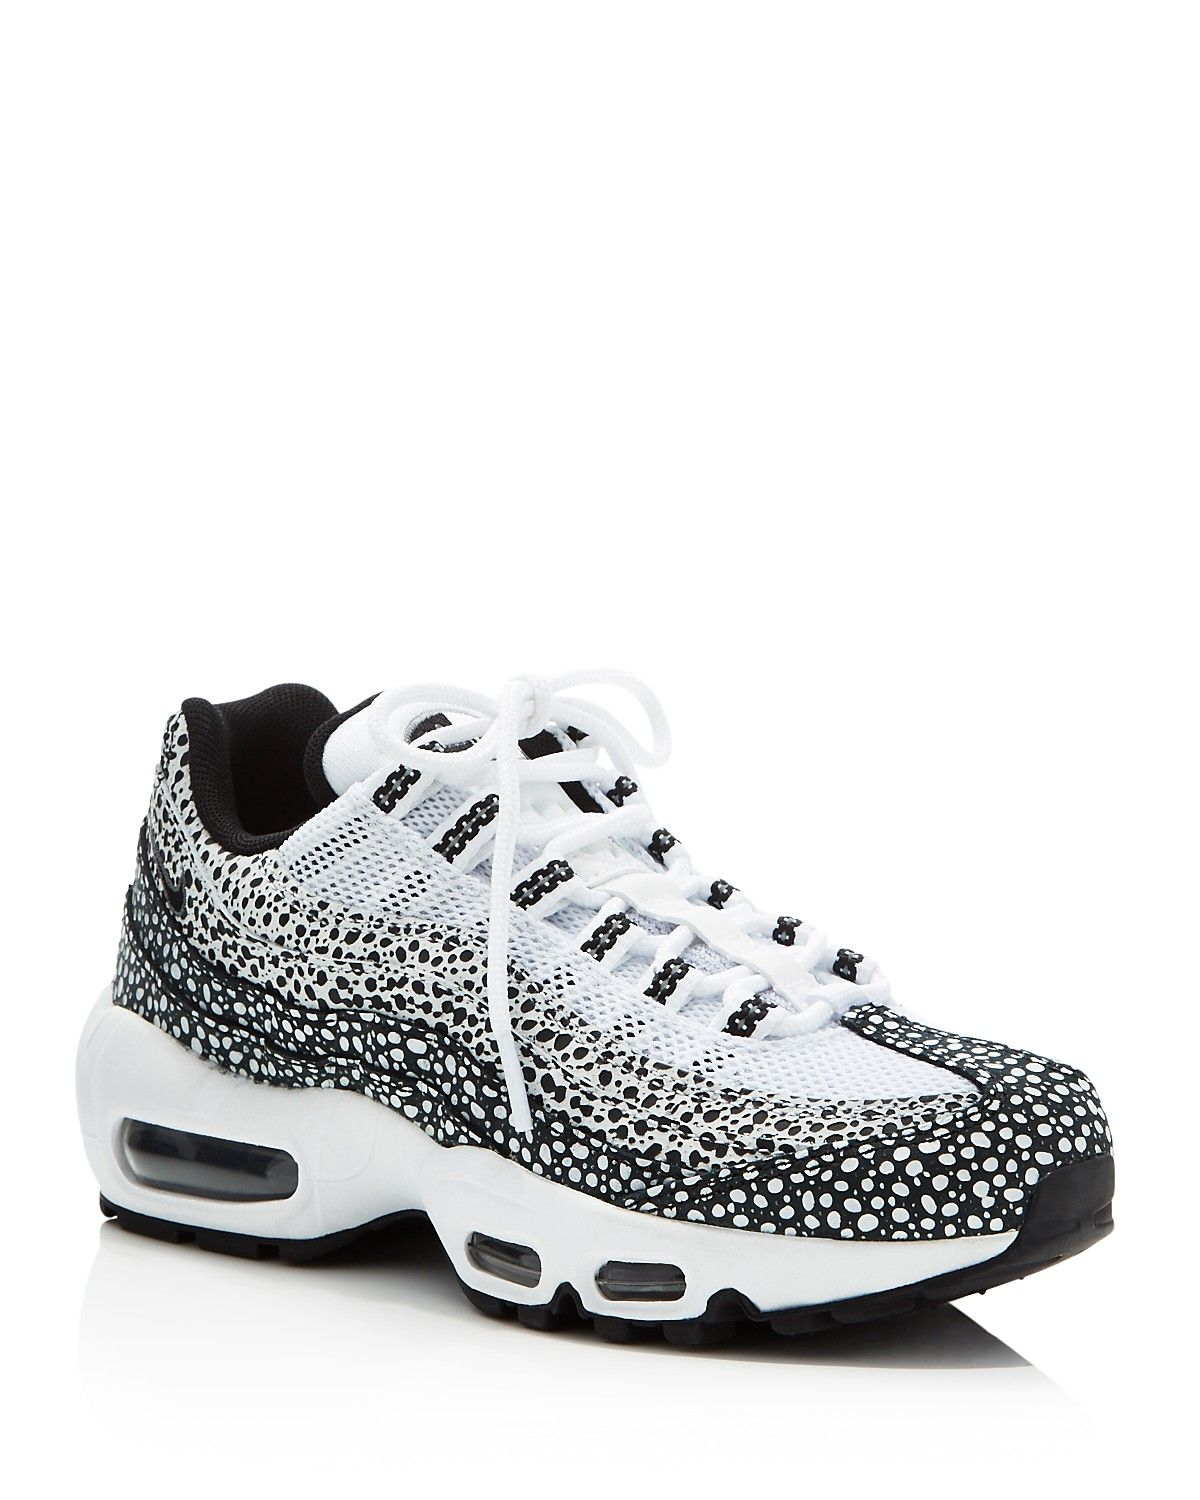 Nike Air Max 95 Rpm Embossed Lace Up Sneakers Adidas Shoes Women